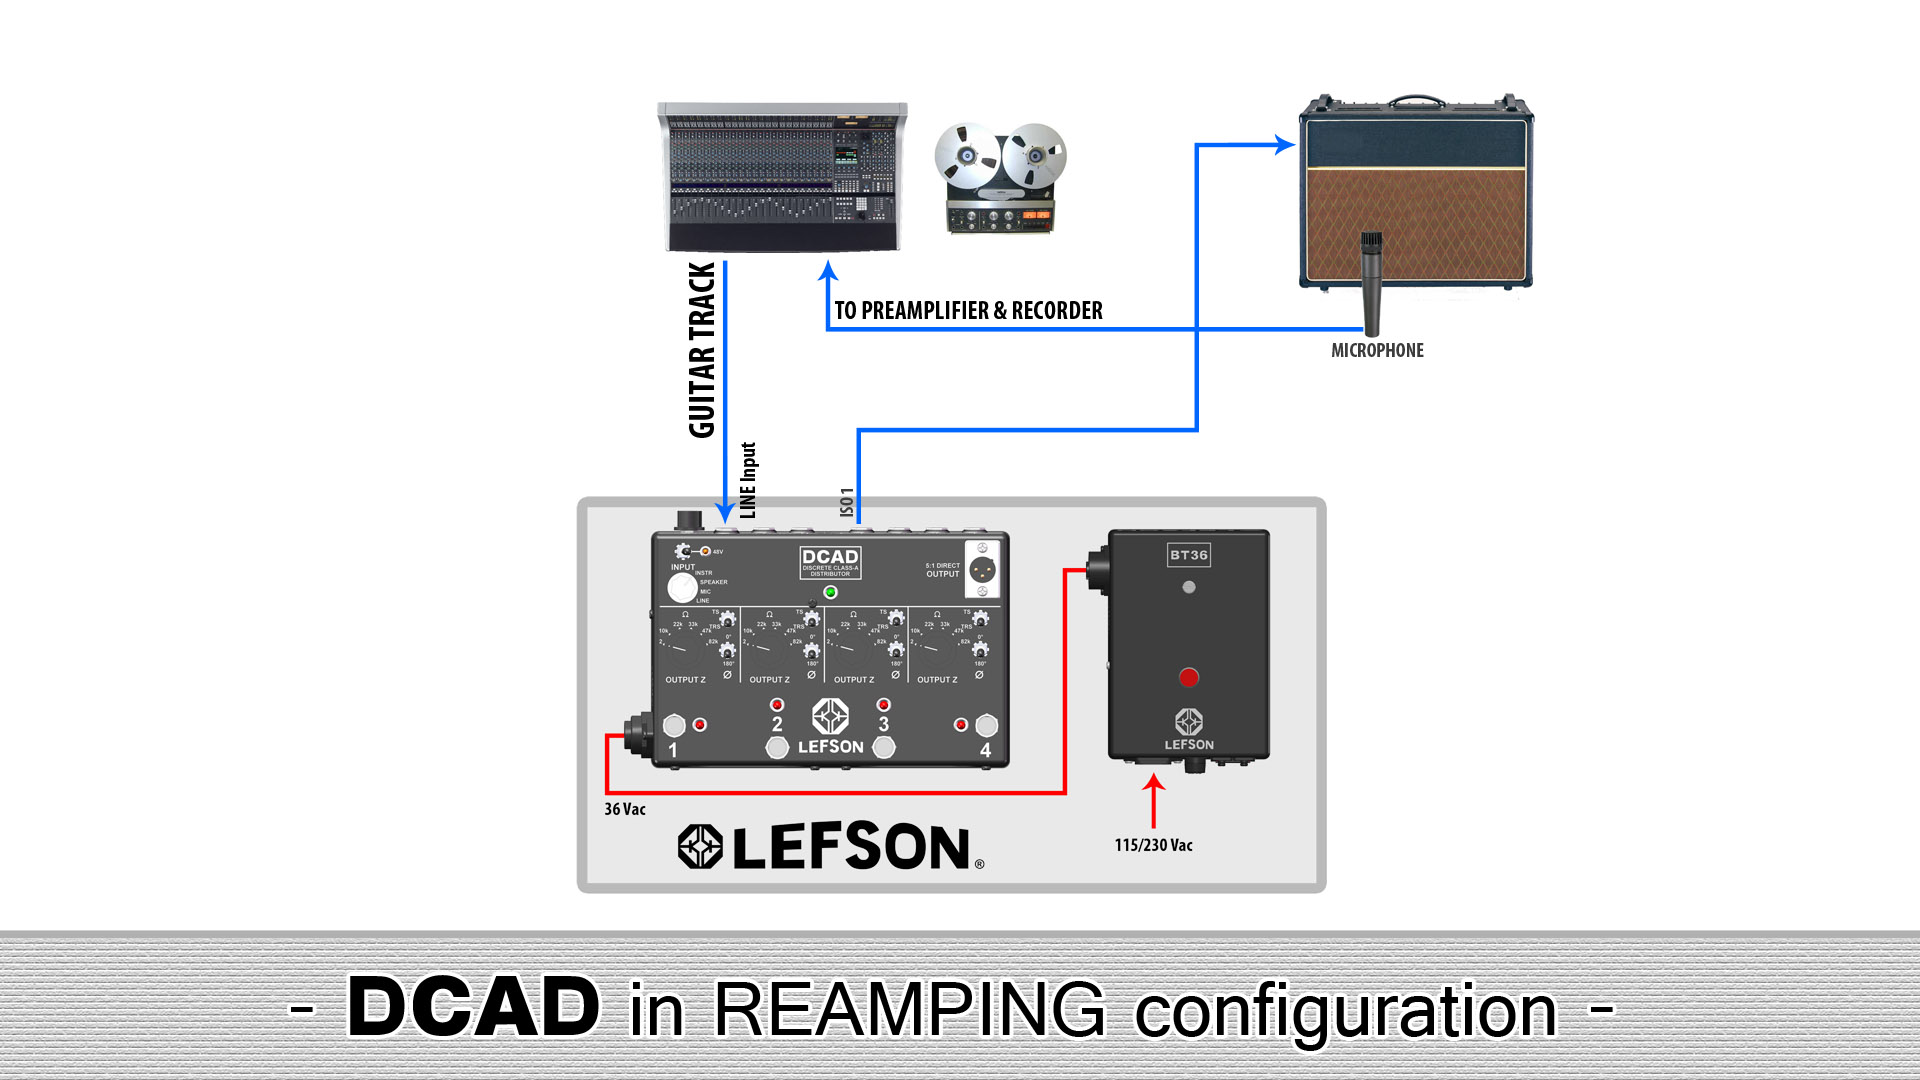 Picture of reamping with the DCAD